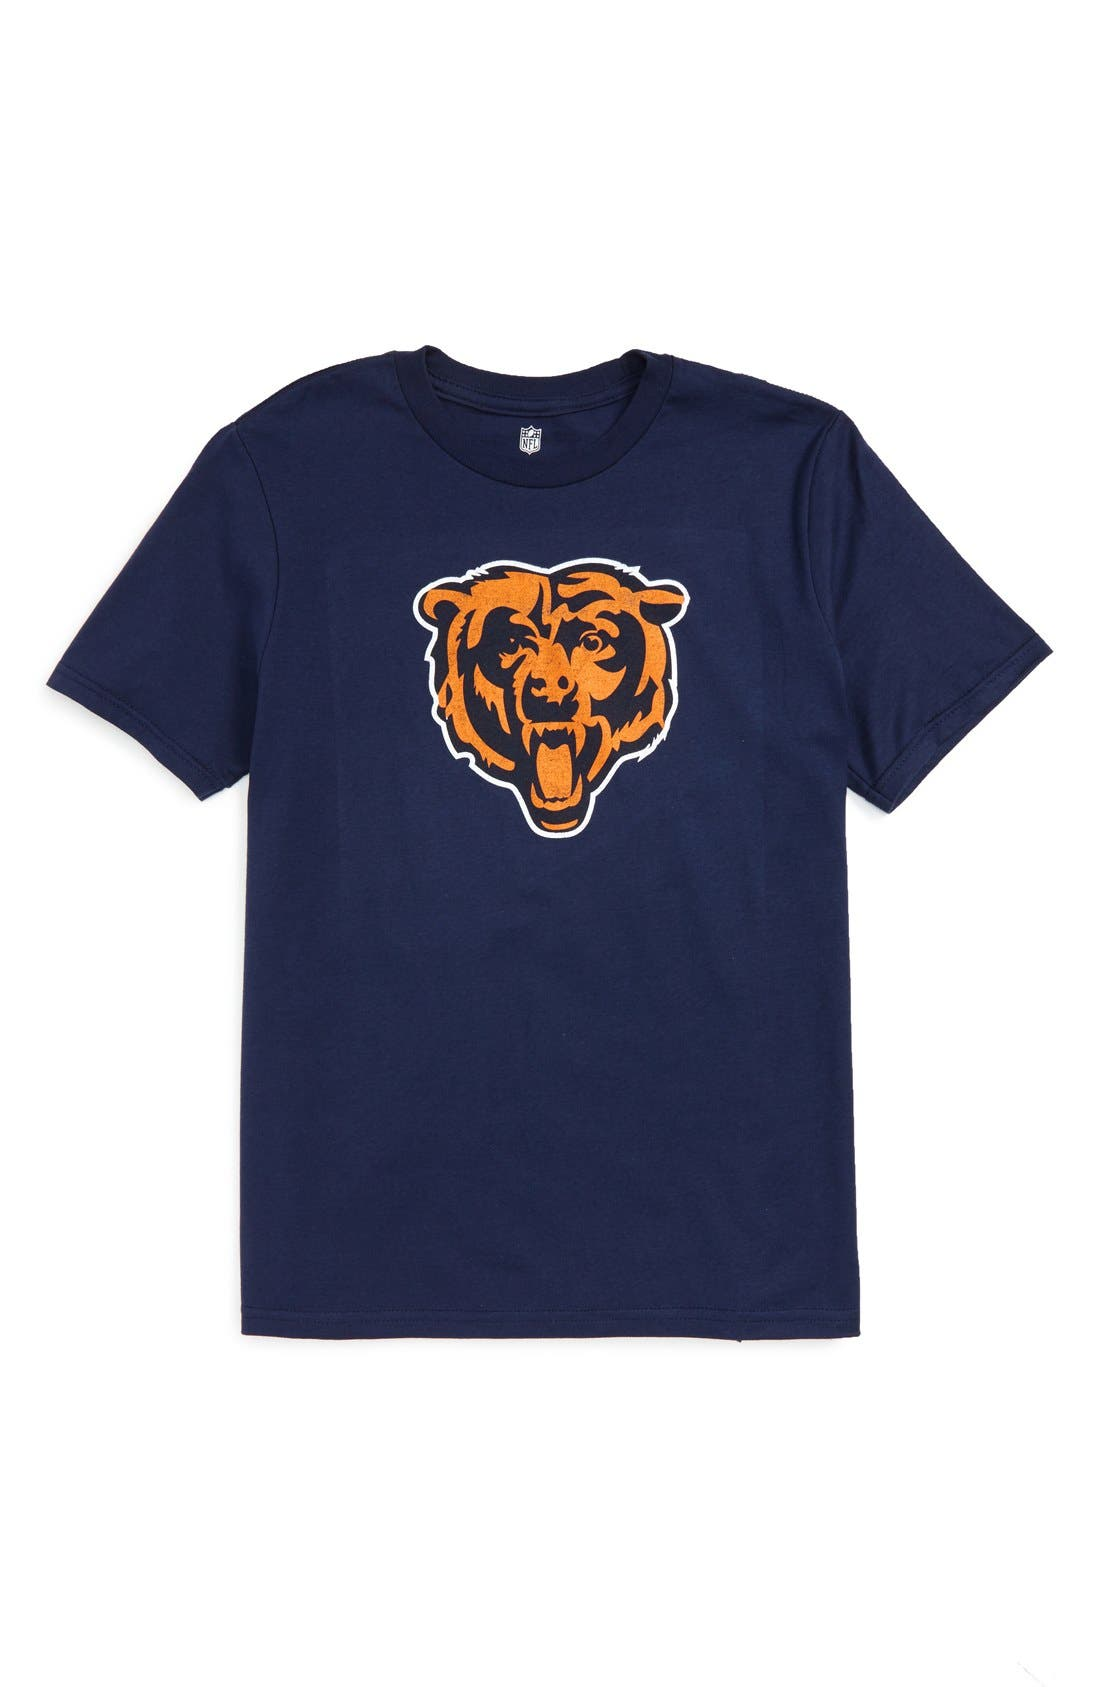 Main Image - Outerstuff 'NFL - Chicago Bears' Distressed Logo Graphic T-Shirt (Toddler Boys & Little Boys)